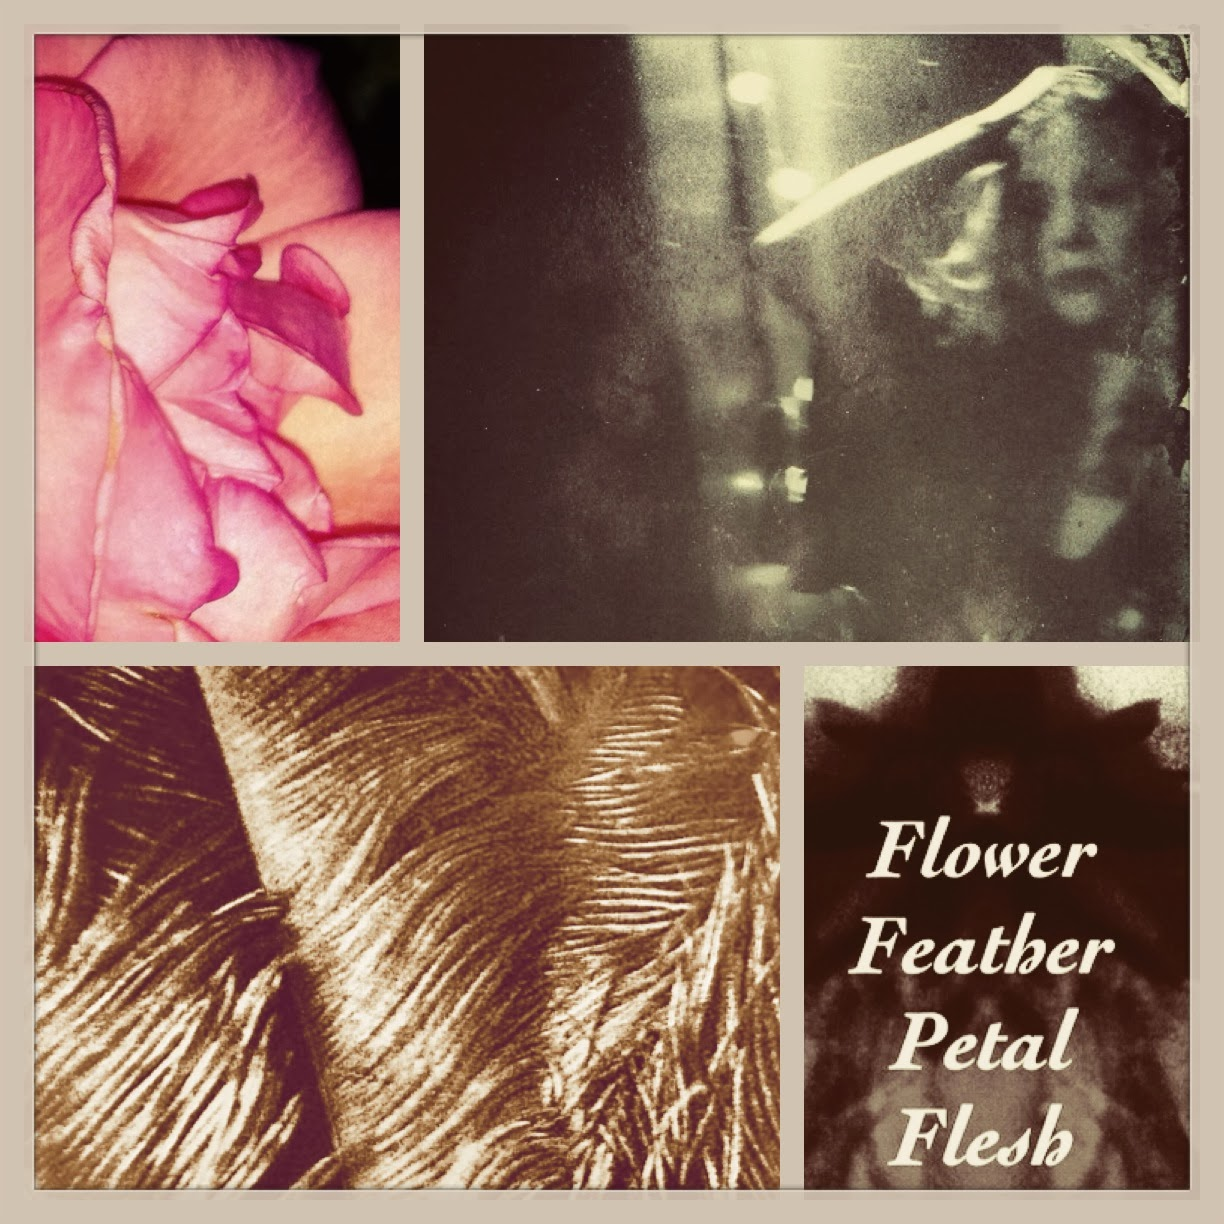 FLOWER FEATHER PETAL FLESH